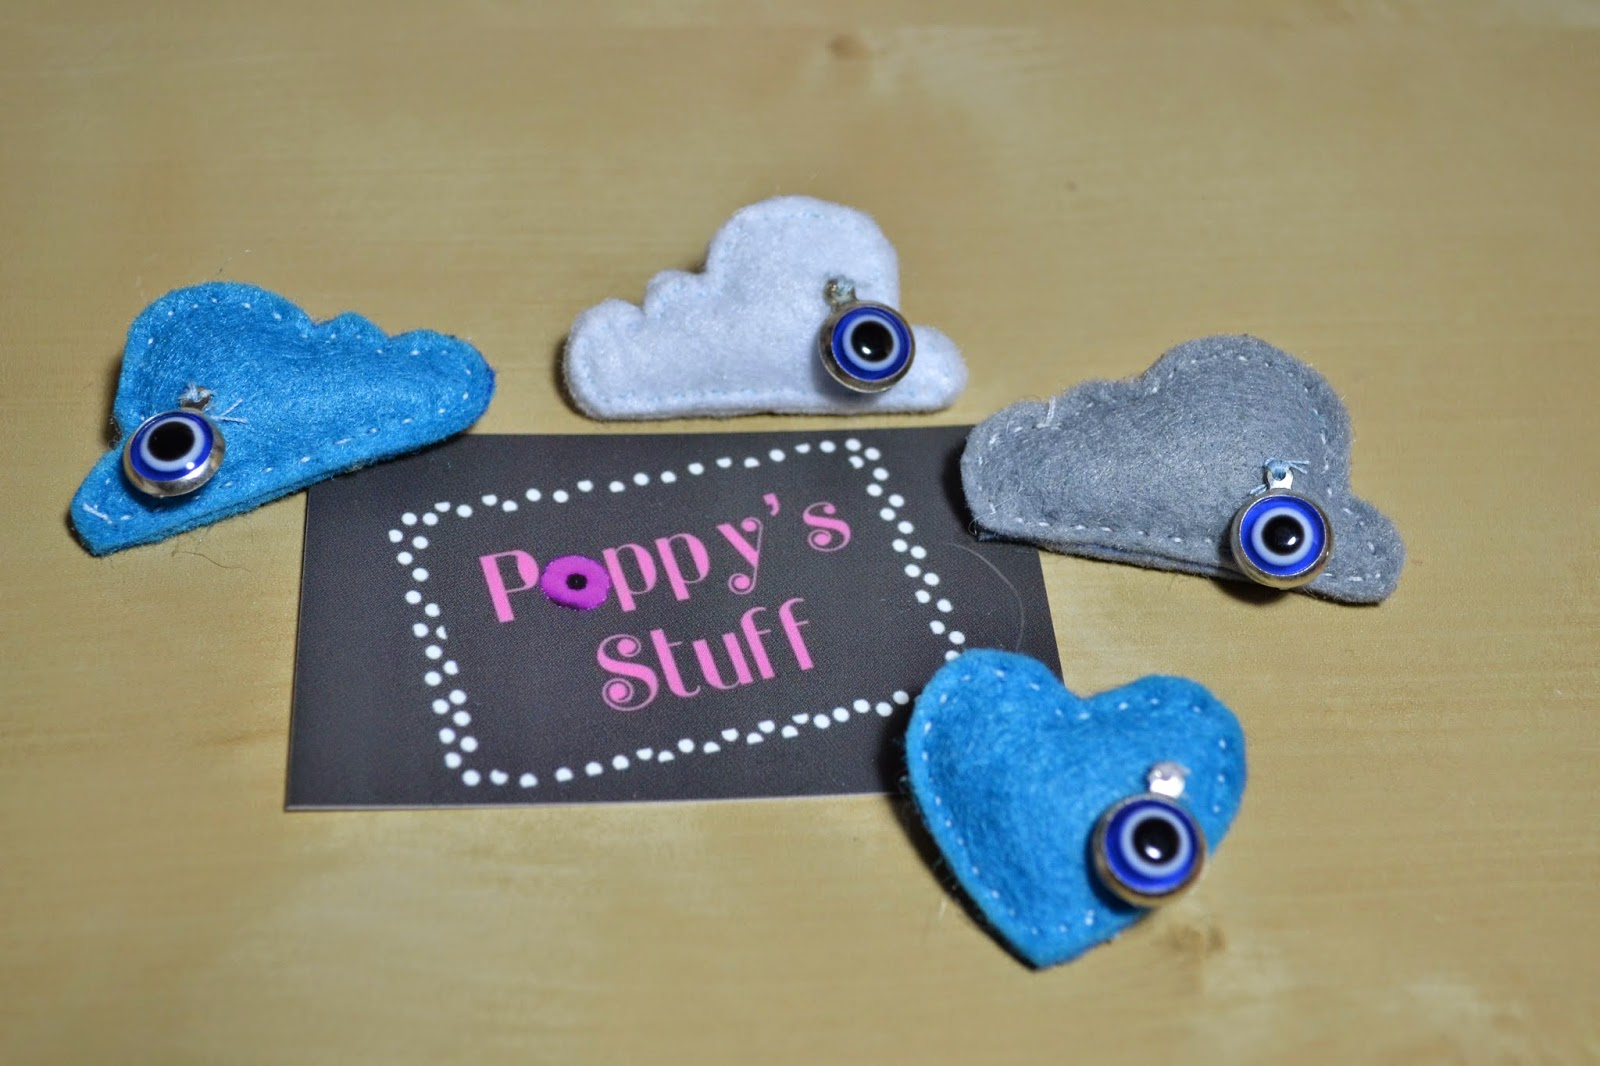 https://www.etsy.com/listing/188682306/felt-brooch-cloud-with-evil-eye-for-baby?ref=shop_home_active_5